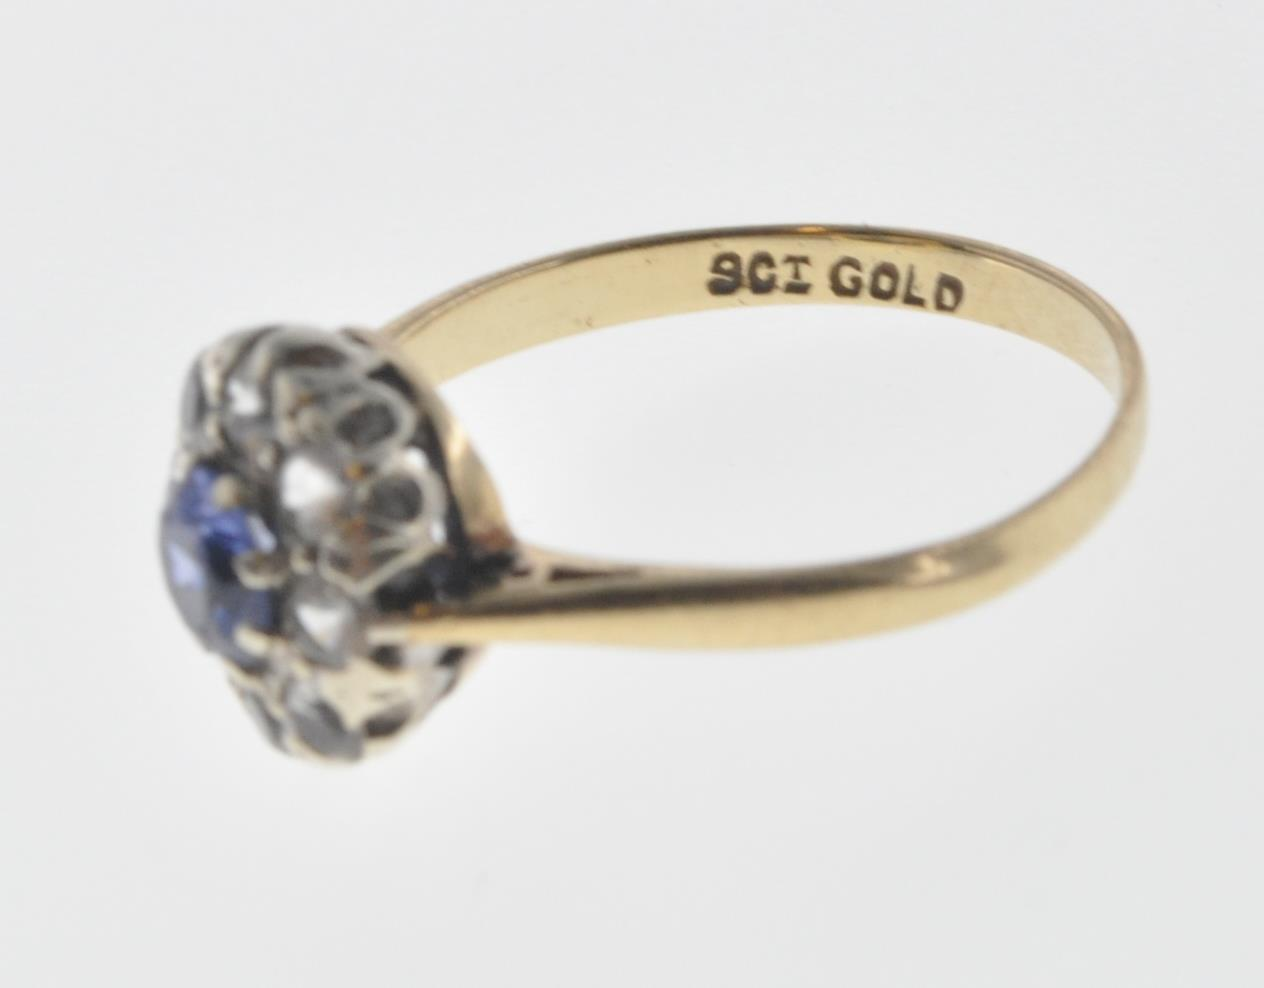 9CT GOLD BLUE AND WHITE STONE CUSTER RING - Image 5 of 6